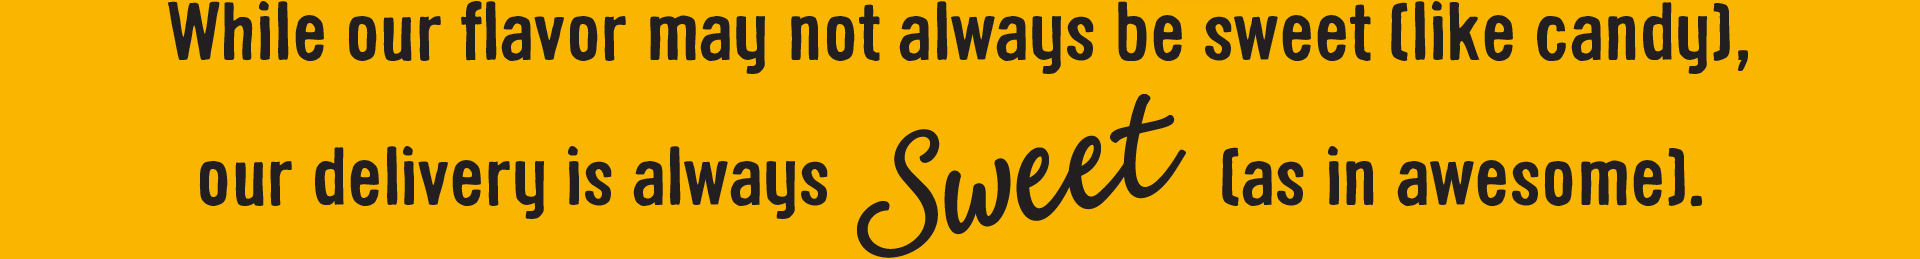 While our flavor may not always be sweet (like candy), our deliver is always Sweet (as in awesome).